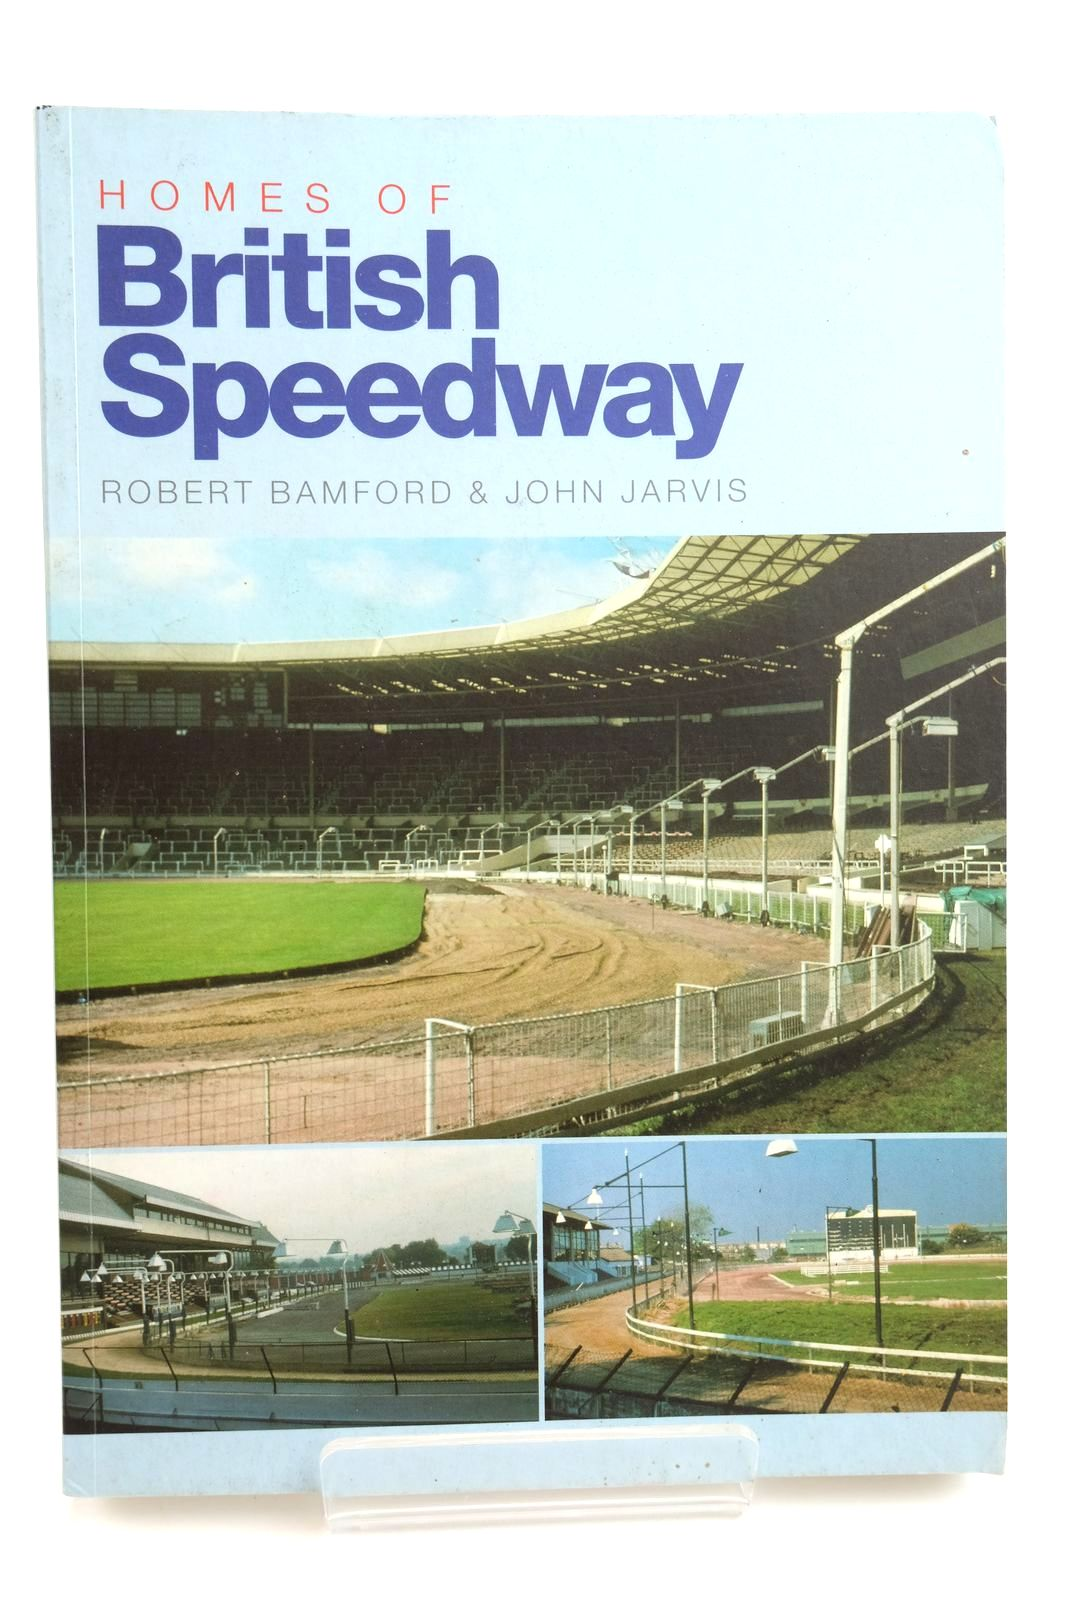 Photo of HOMES OF BRITISH SPEEDWAY written by Bamford, Robert Jarvis, John published by Stadia (STOCK CODE: 2132274)  for sale by Stella & Rose's Books